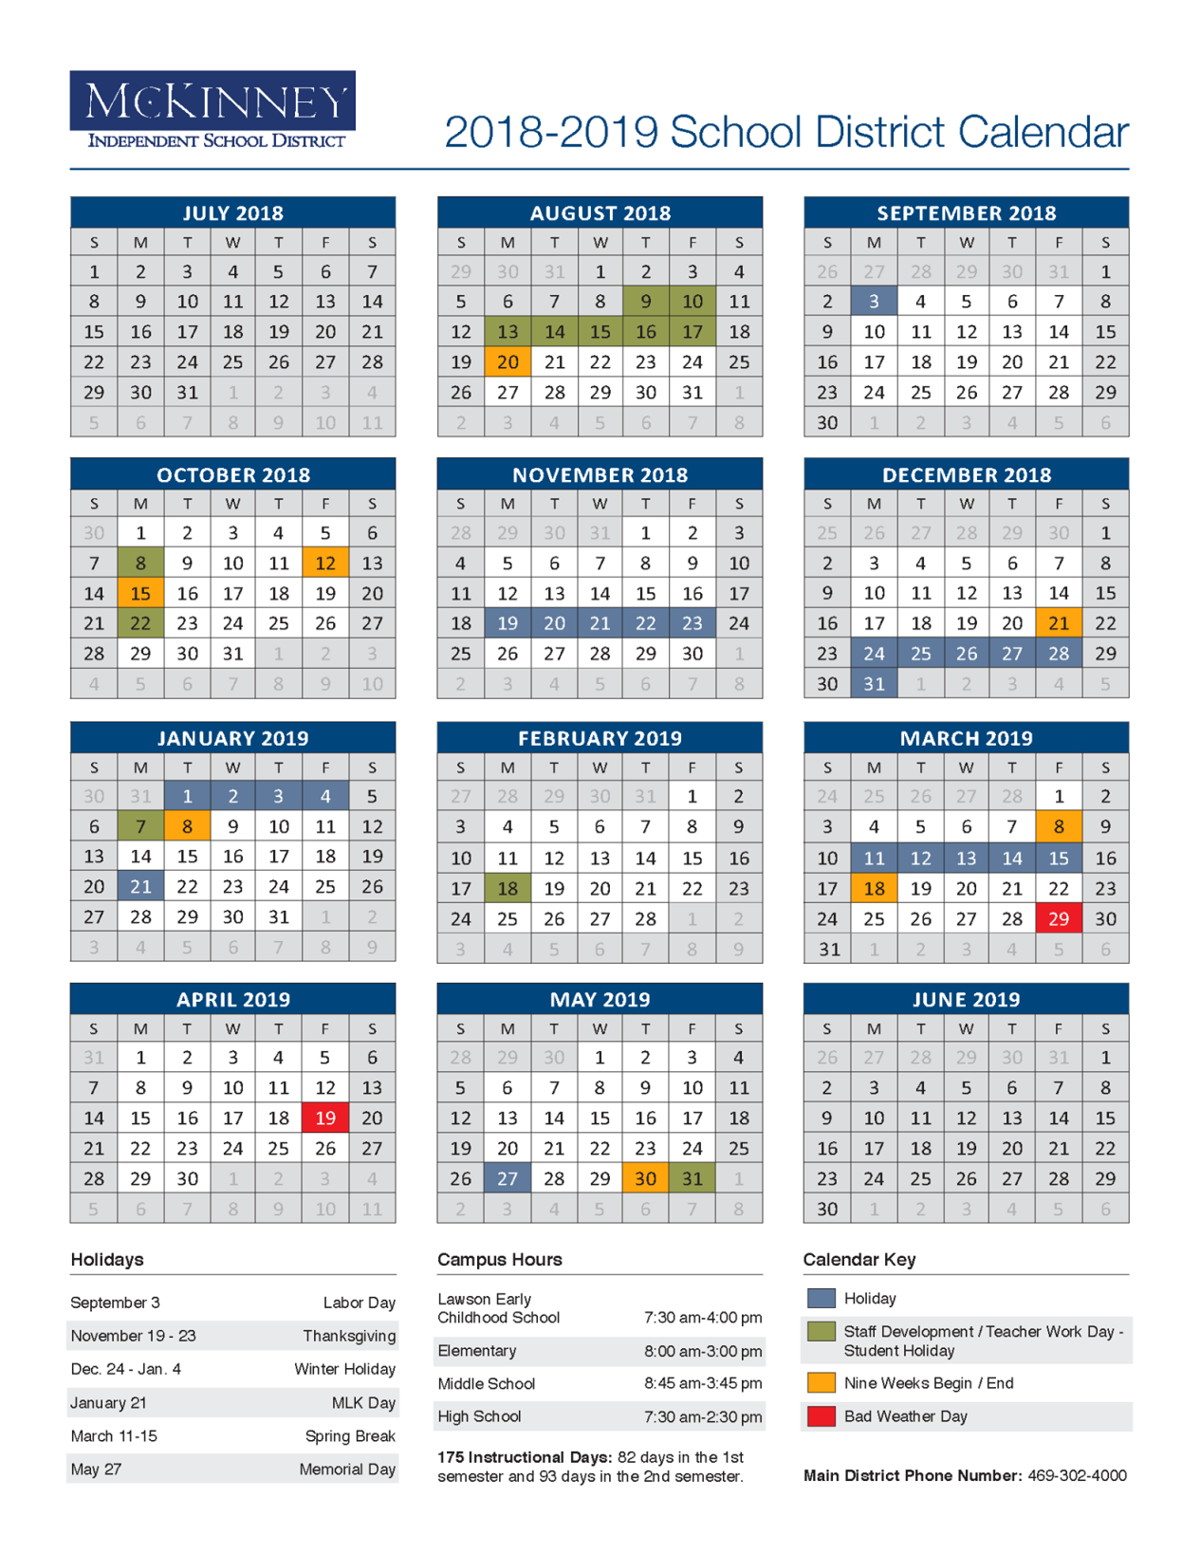 McKinney ISD approves 2018 19 calendar: District of Innovation